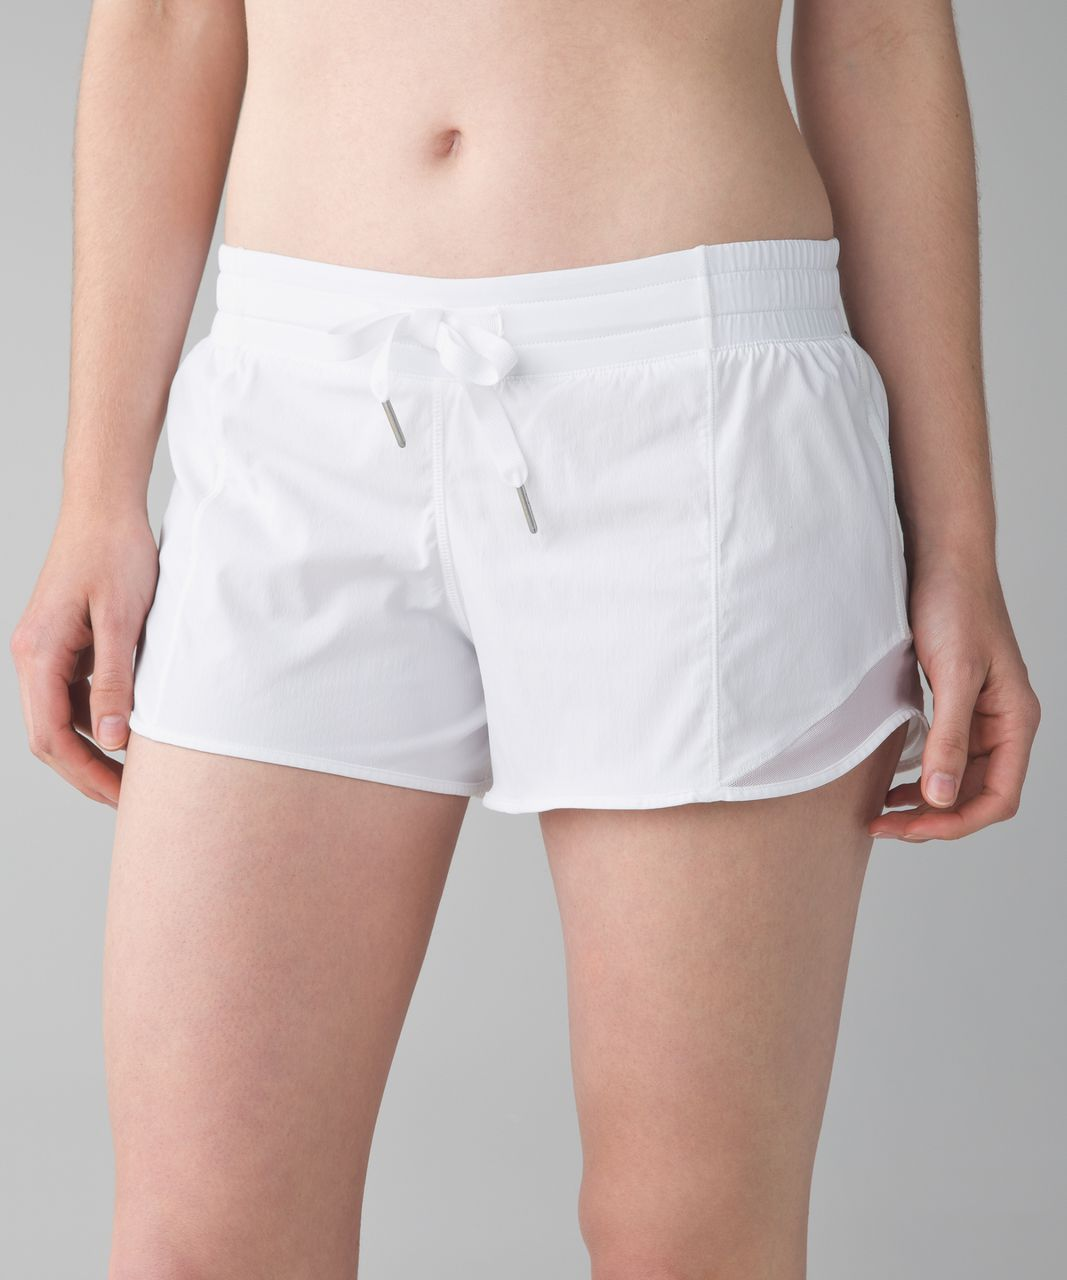 Lululemon Hotty Hot Short - White